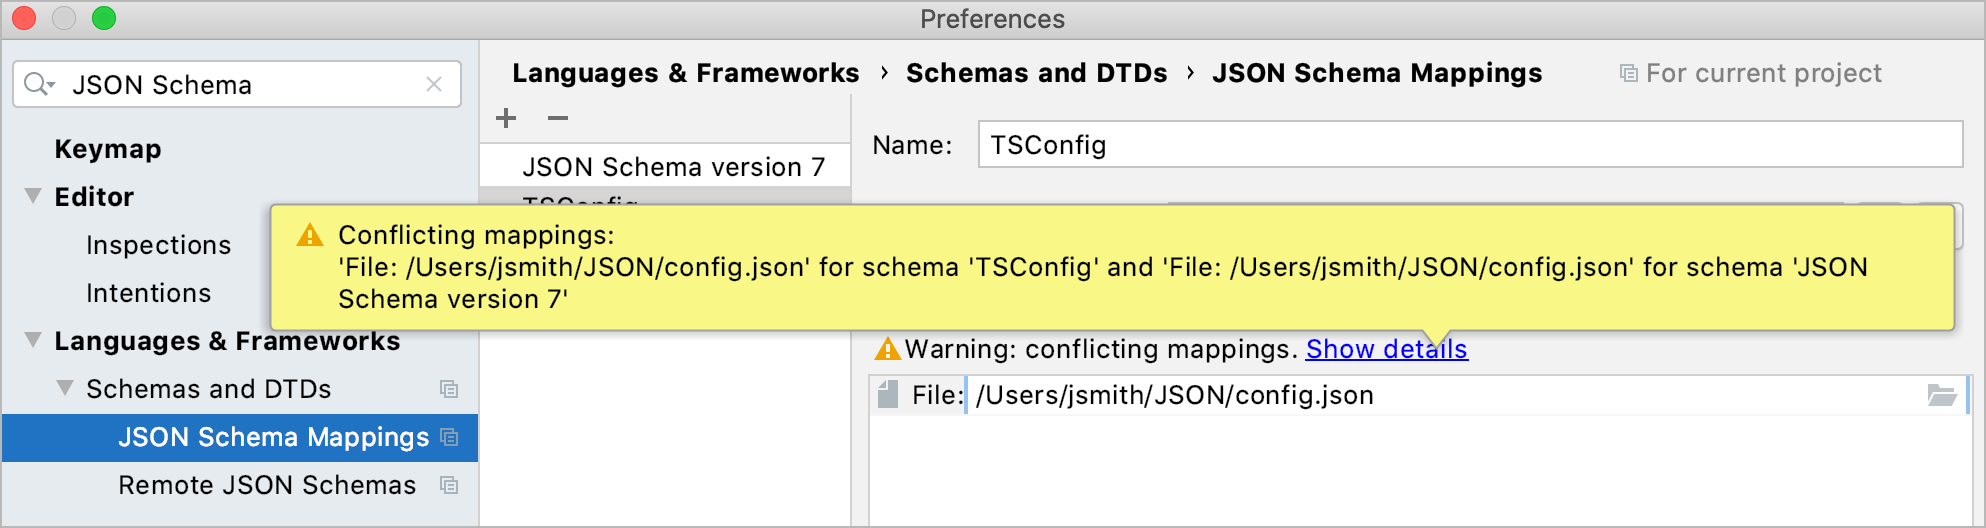 Notification about conflicting schema scopes in Preferences dialog